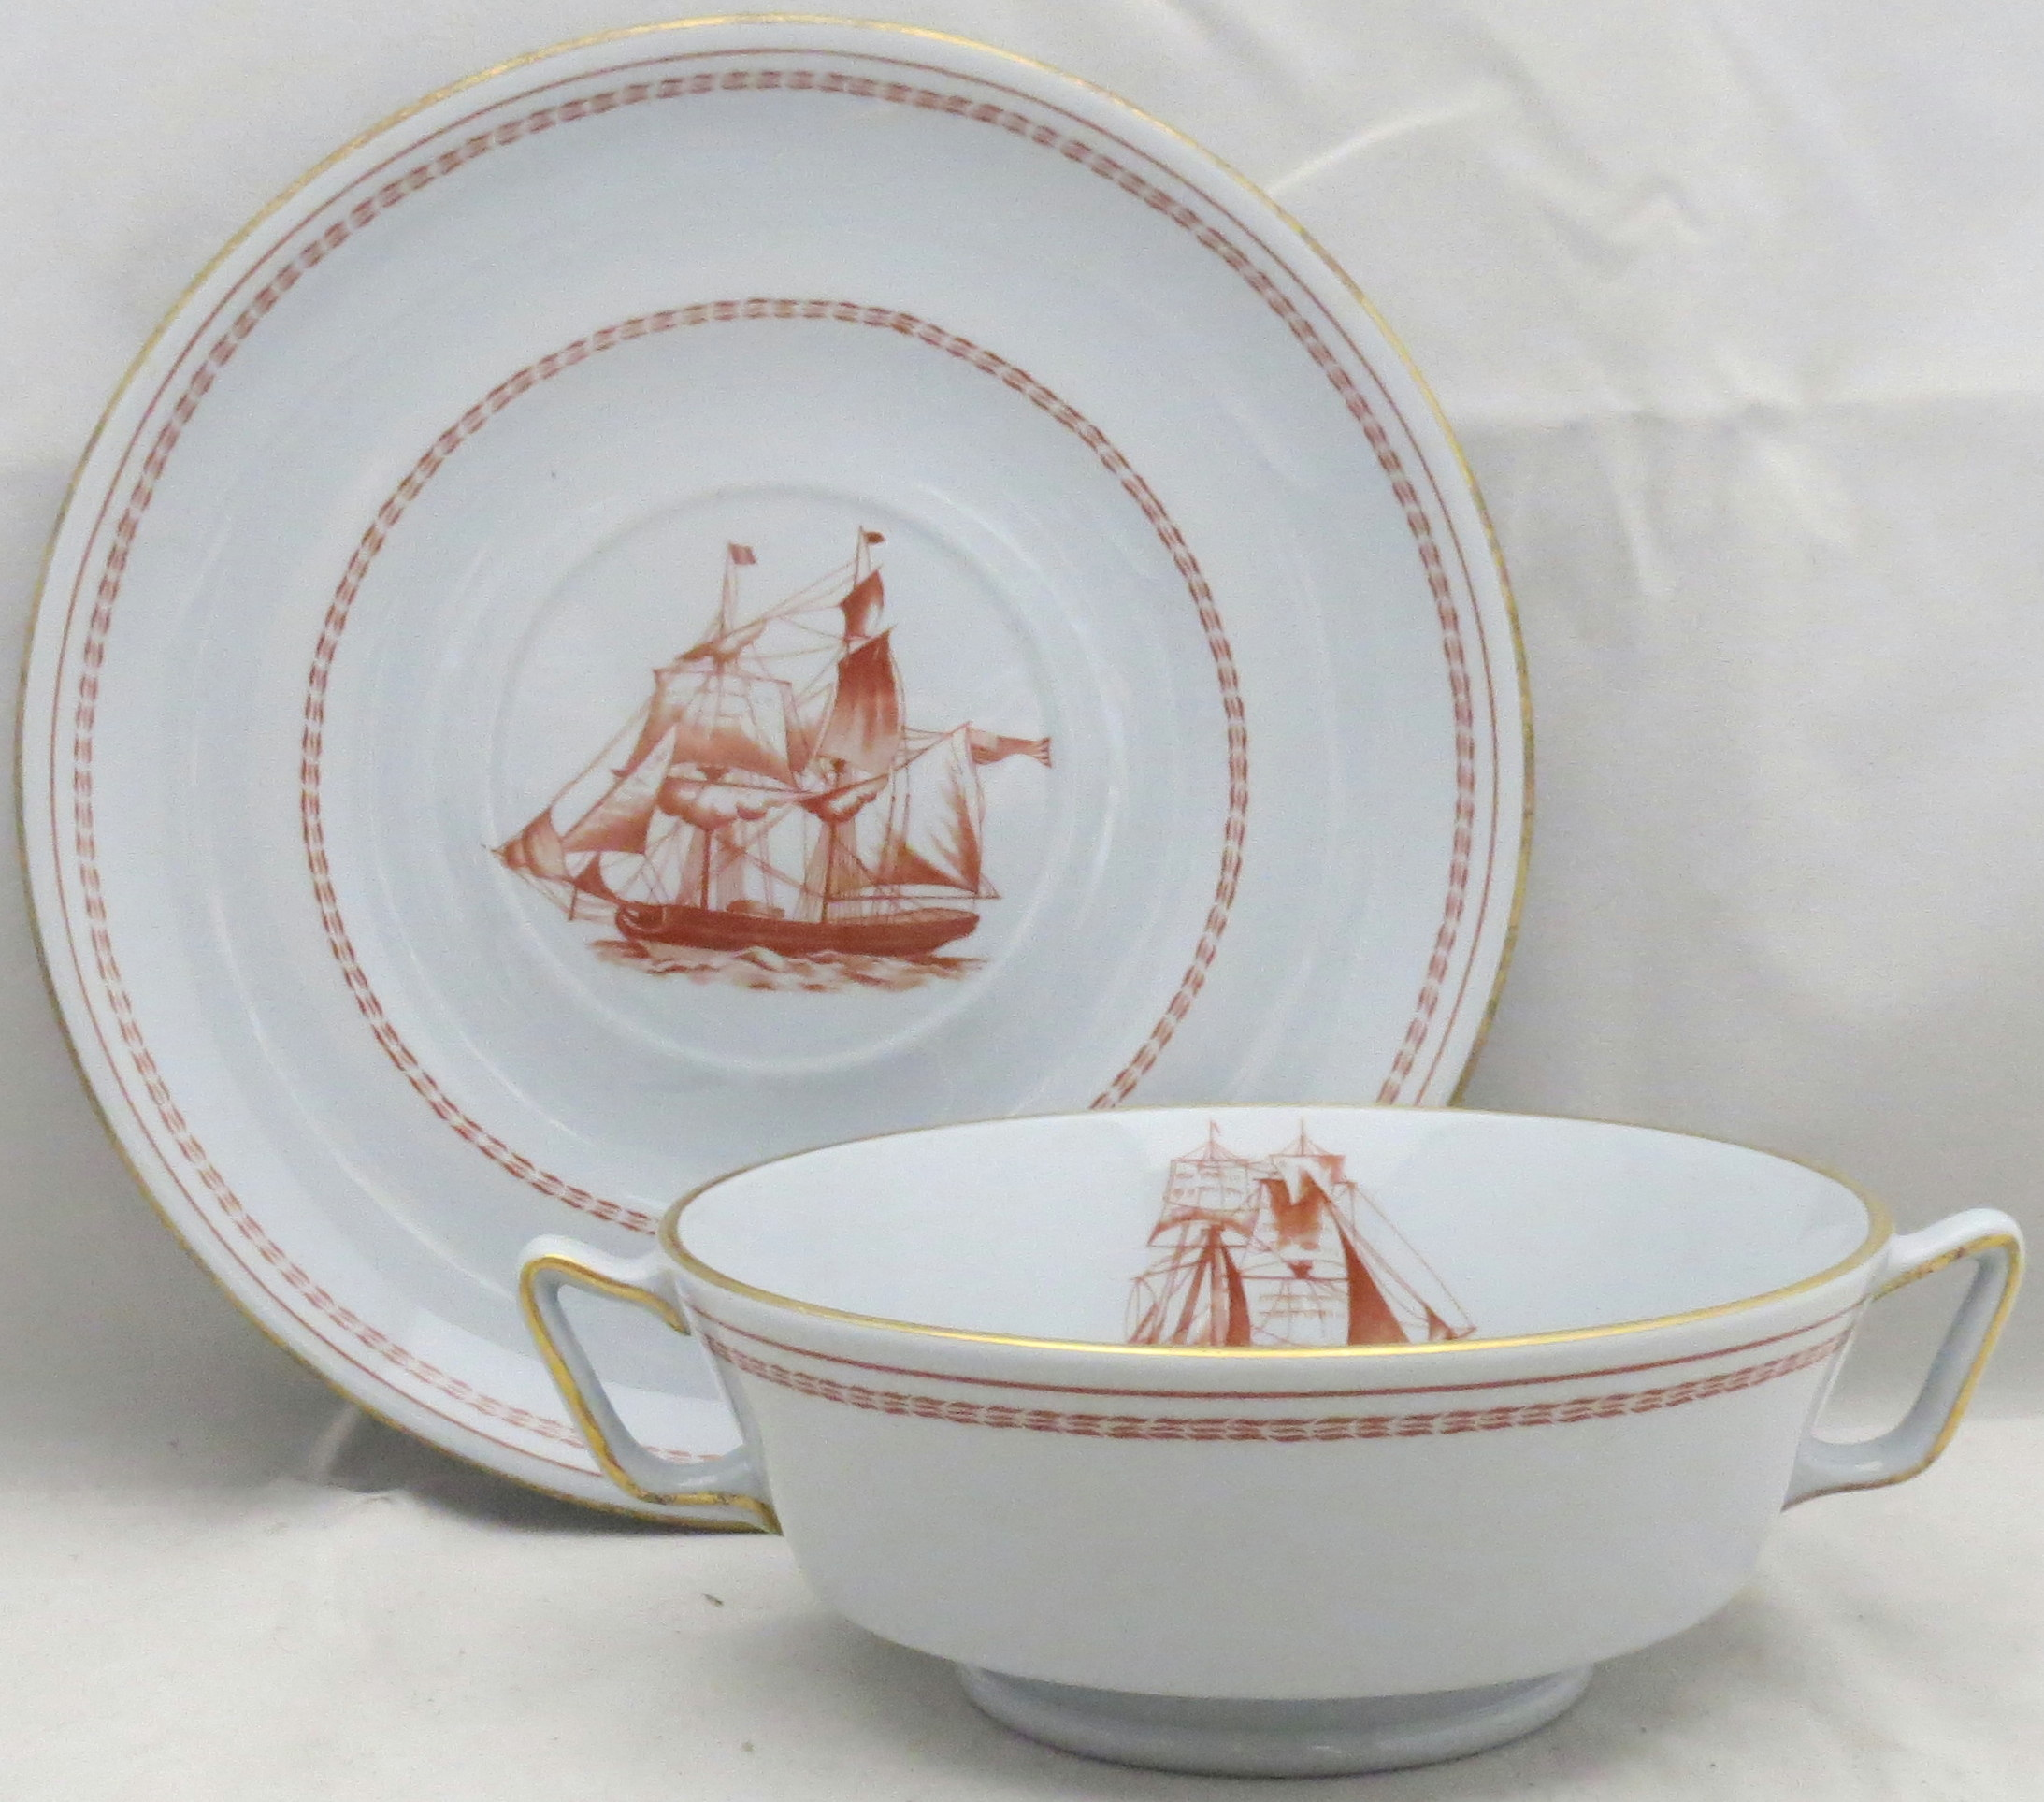 Spode Trade Winds-Red Footed Cream Soup Bowl & Saucer Set